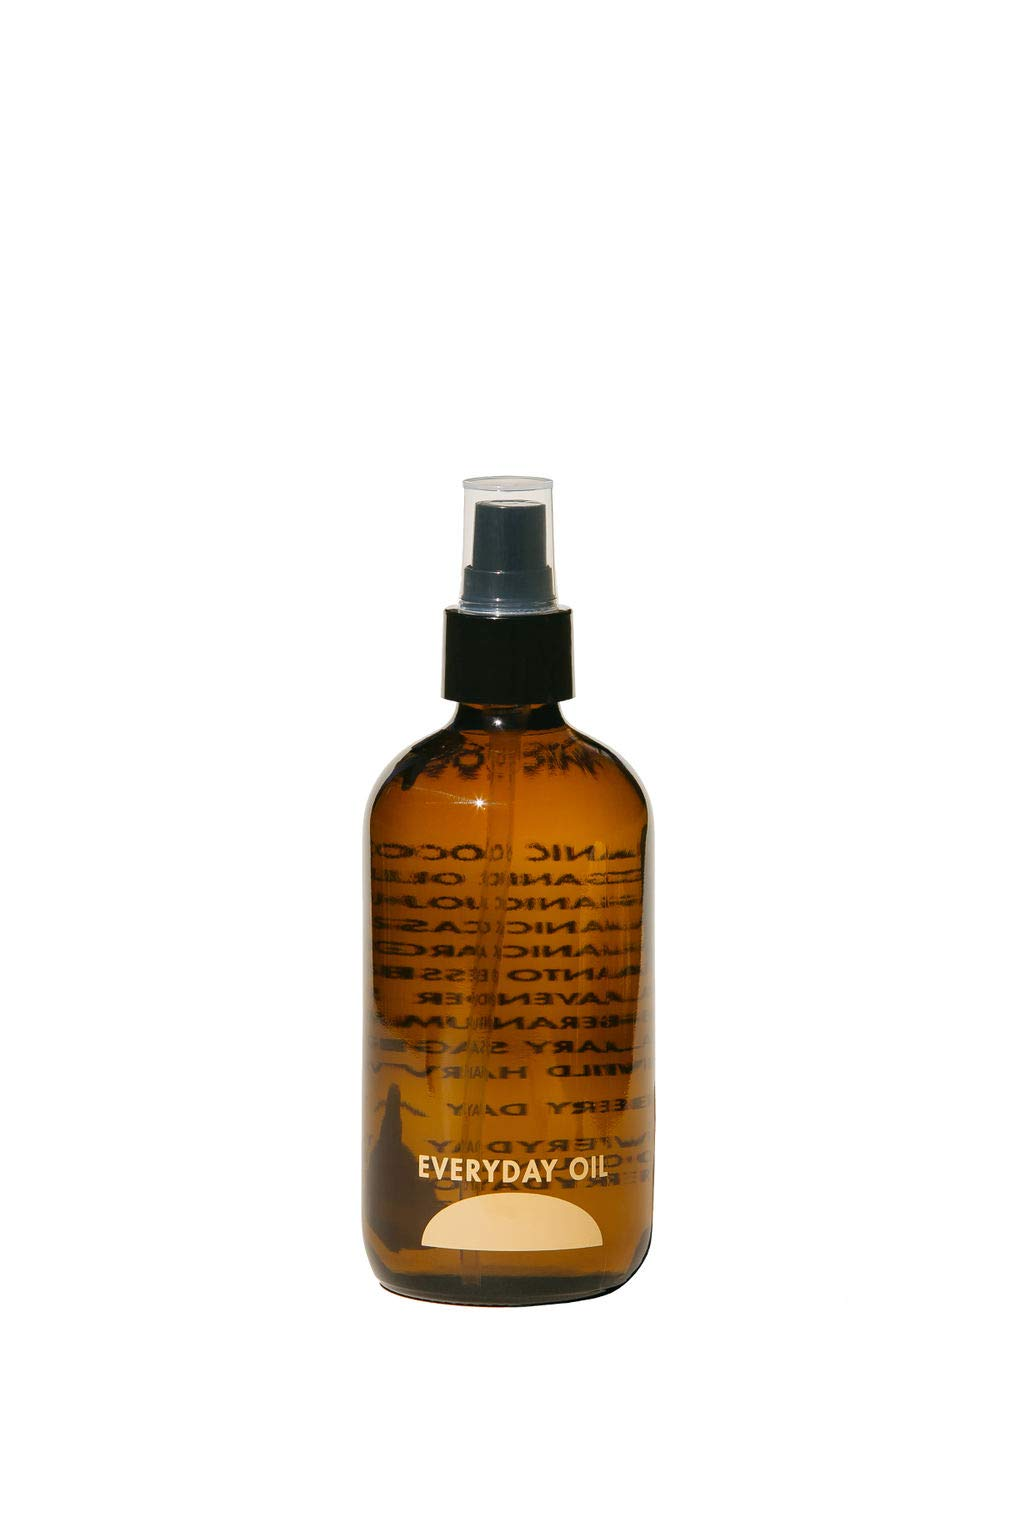 Everyday Oil Mainstay Blend, Face + Body Oil, Cleansing, Balancing, Hydrating, 8oz.